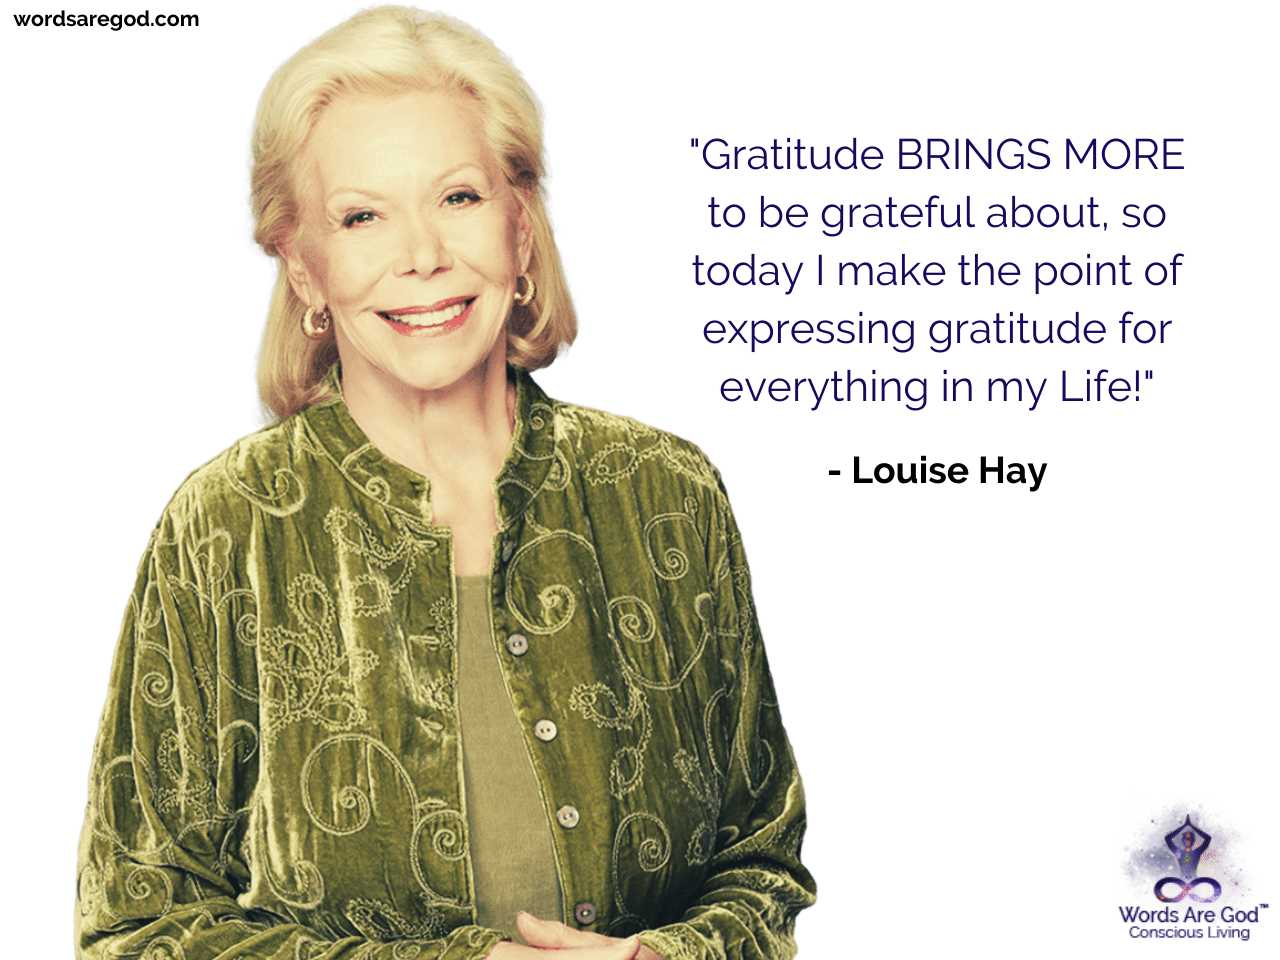 Louise Hay Inspirational Quote by Louise Hay